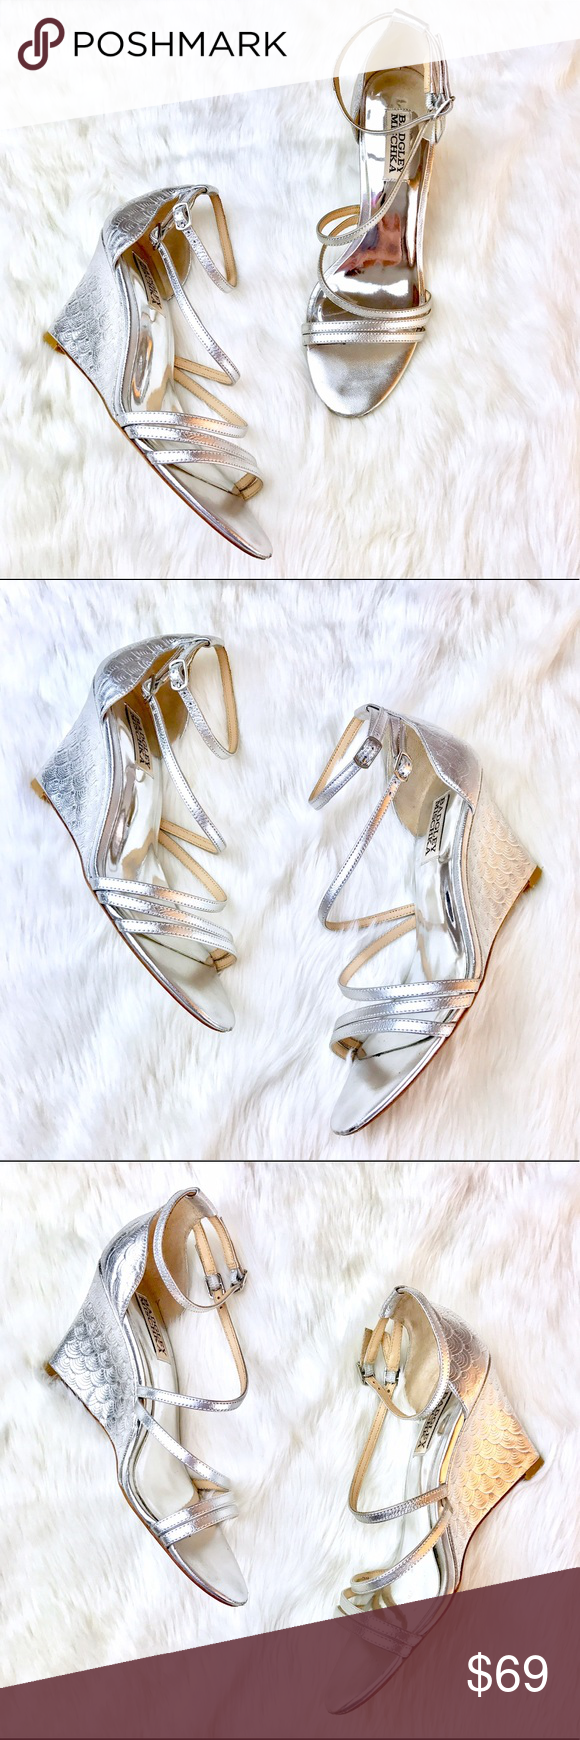 9740fca0a Badgley Mischka Carnation II Wedge Sandal Gorgeous metallic leather wedge  sandal with crossover straps and a